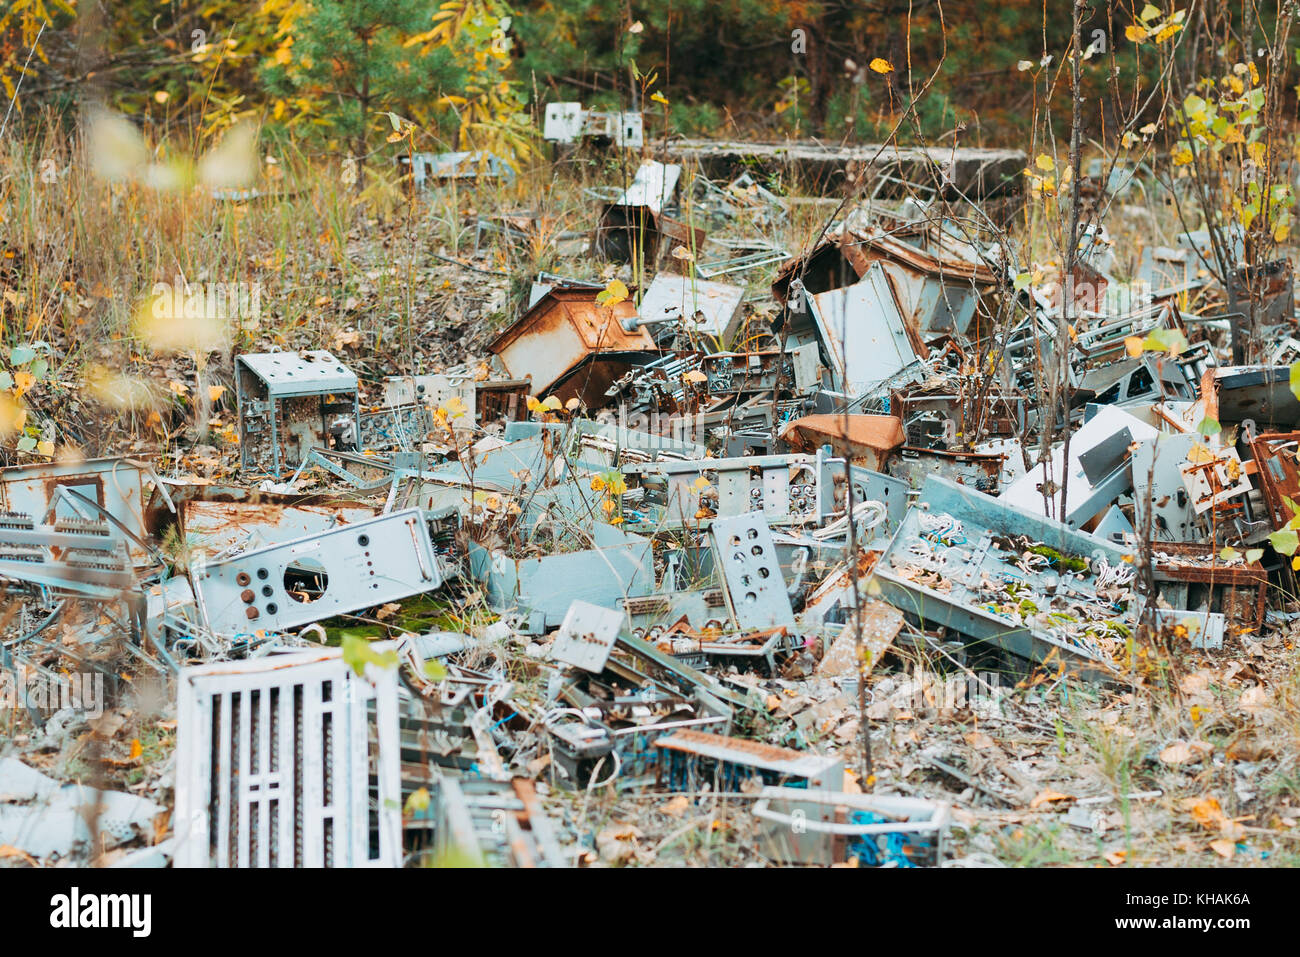 Smashed parts from 1980s computers lie resting in a field in Chernobyl, Ukraine - Stock Image